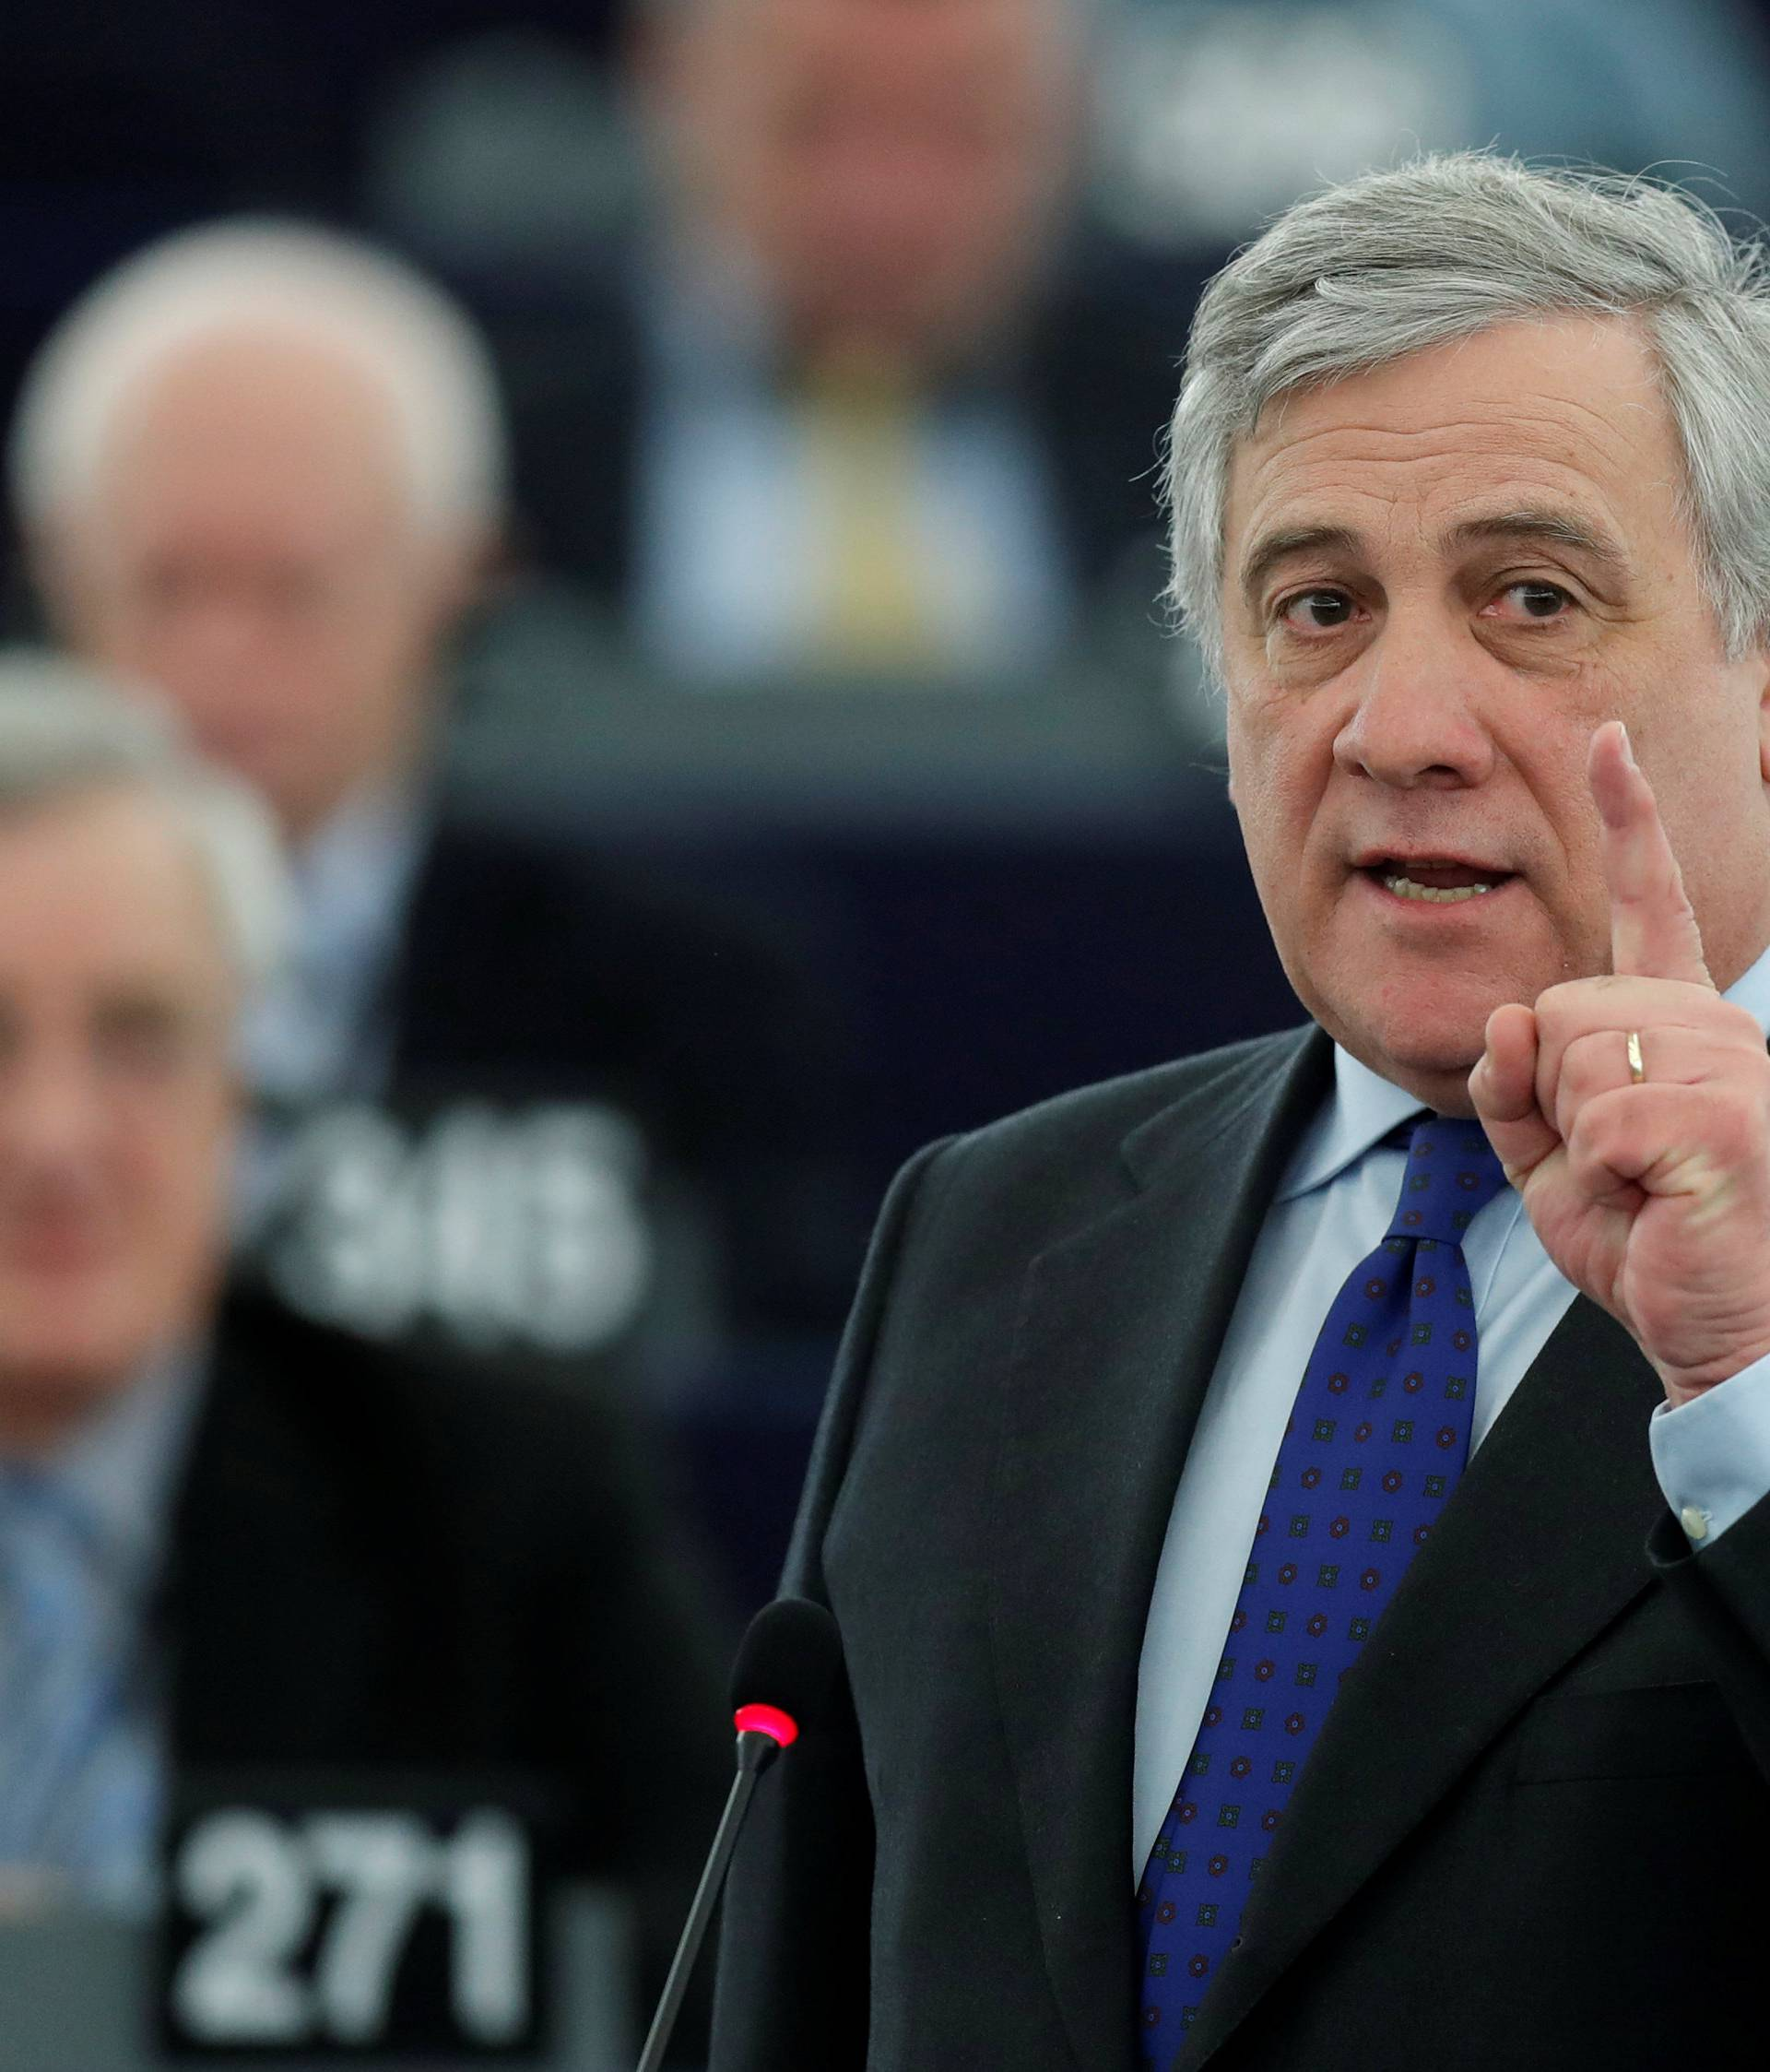 European Parliament's presidential candidate Tajani attends the presentation of the candidates for the election to the office of the President at the European Parliament in Strasbourg